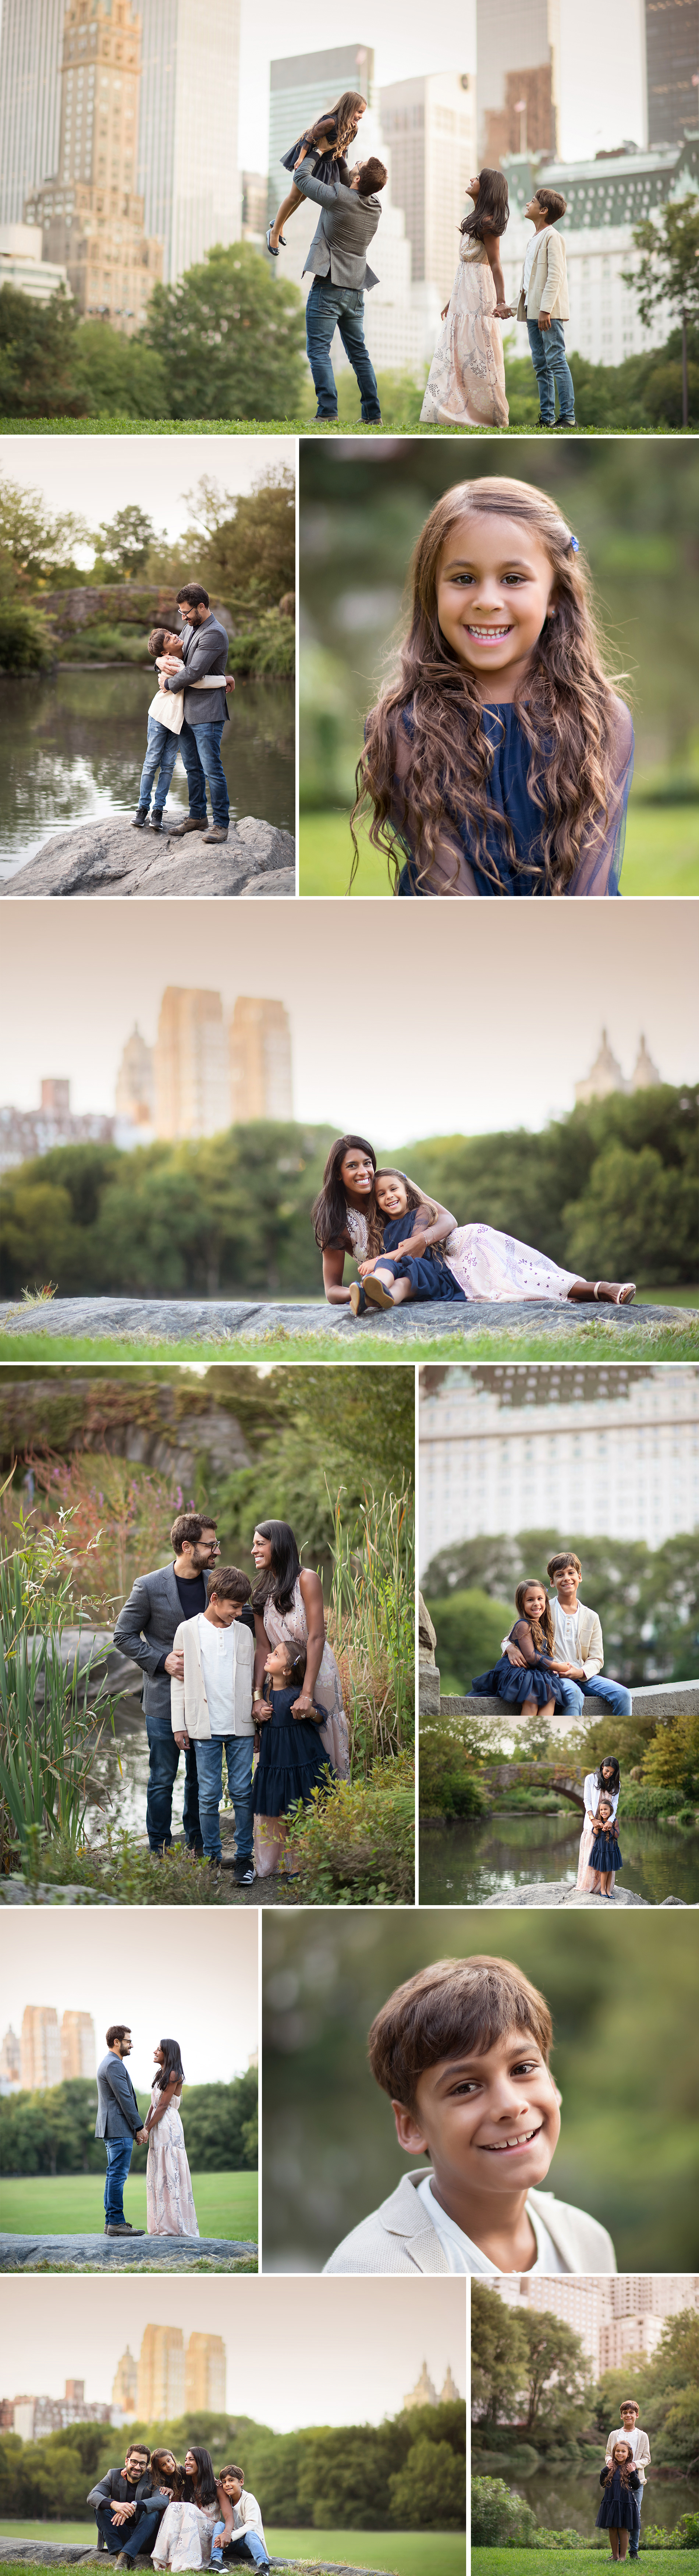 outdoors family photographer central park nyc